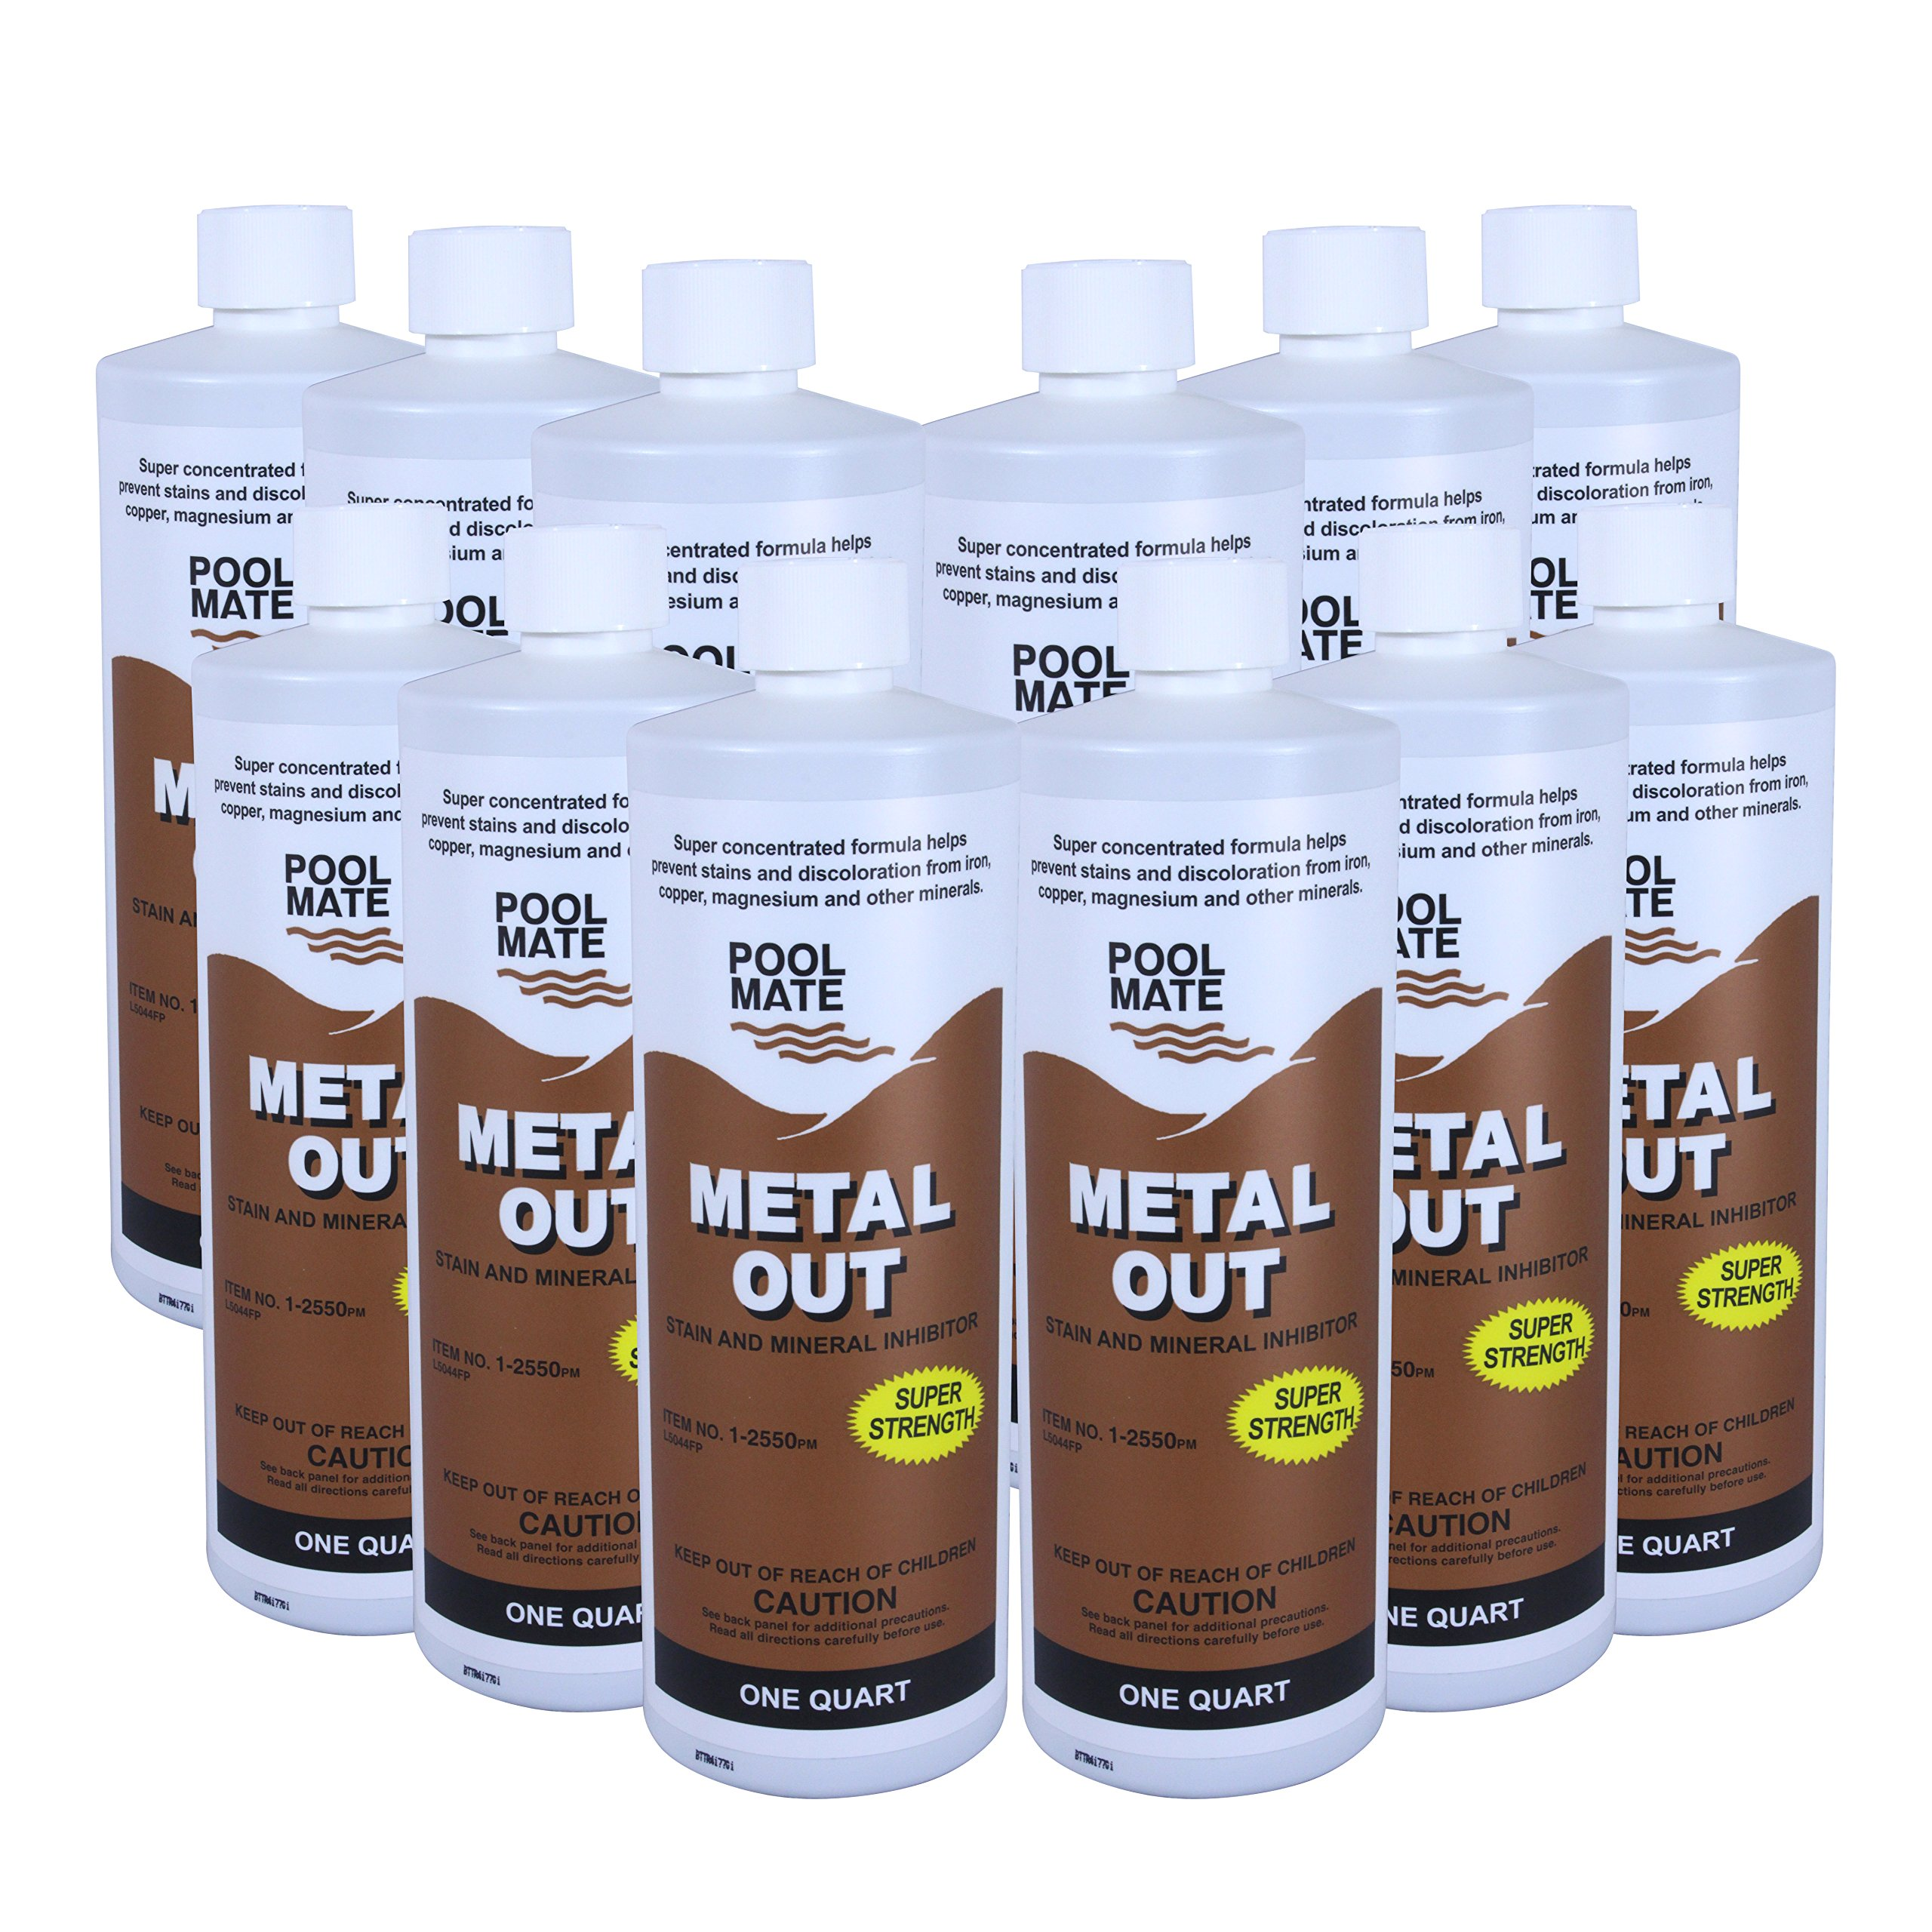 Pool Mate 1-2550-12 Mineral Out and Stain Remover for Swimming Pools (12 Pack), 1 Quart by Pool Mate